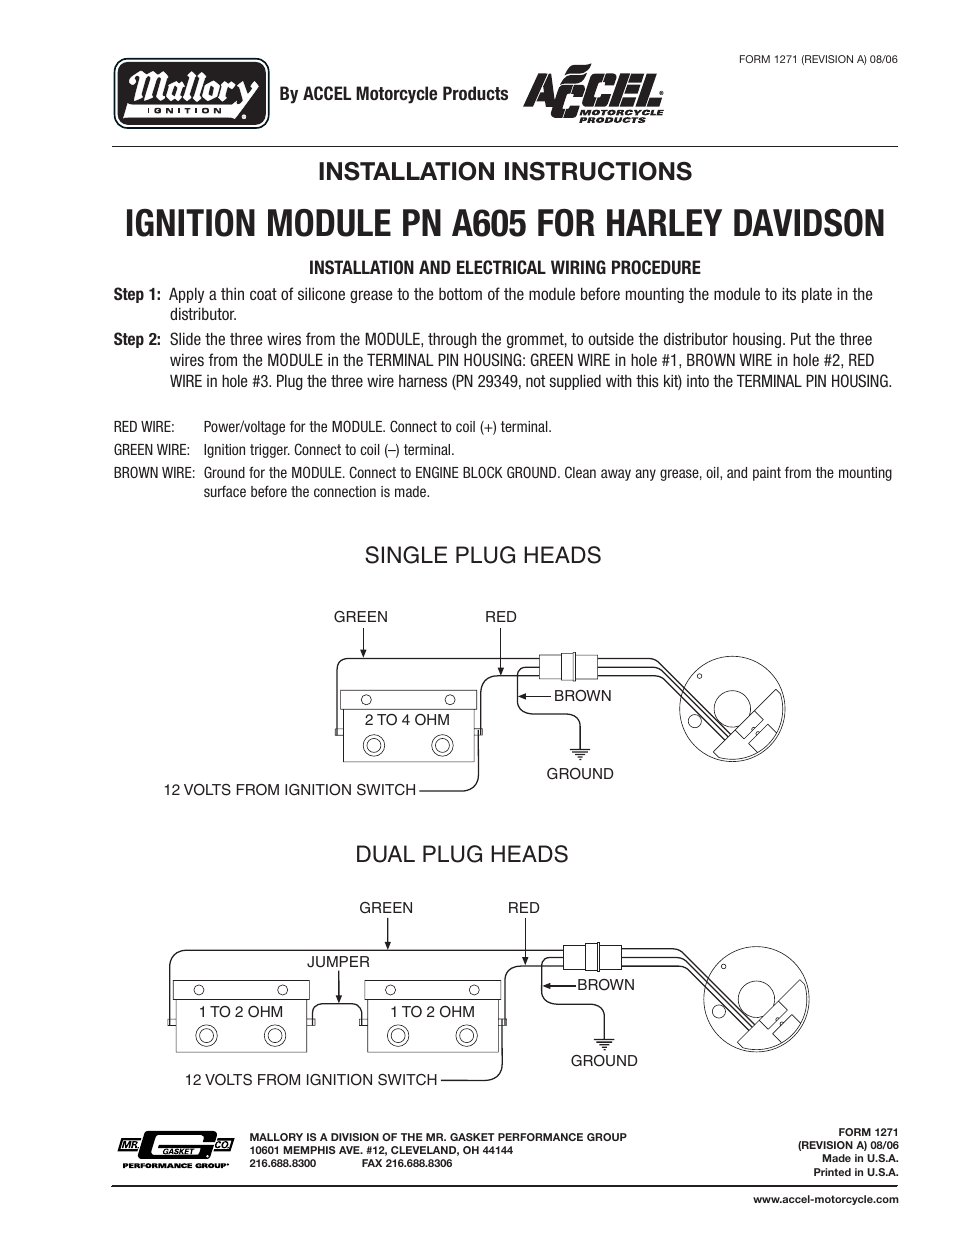 Mallory Ignition Module Wiring Diagram Reinvent Your Systems Diagrams Unilite For Chevy 350